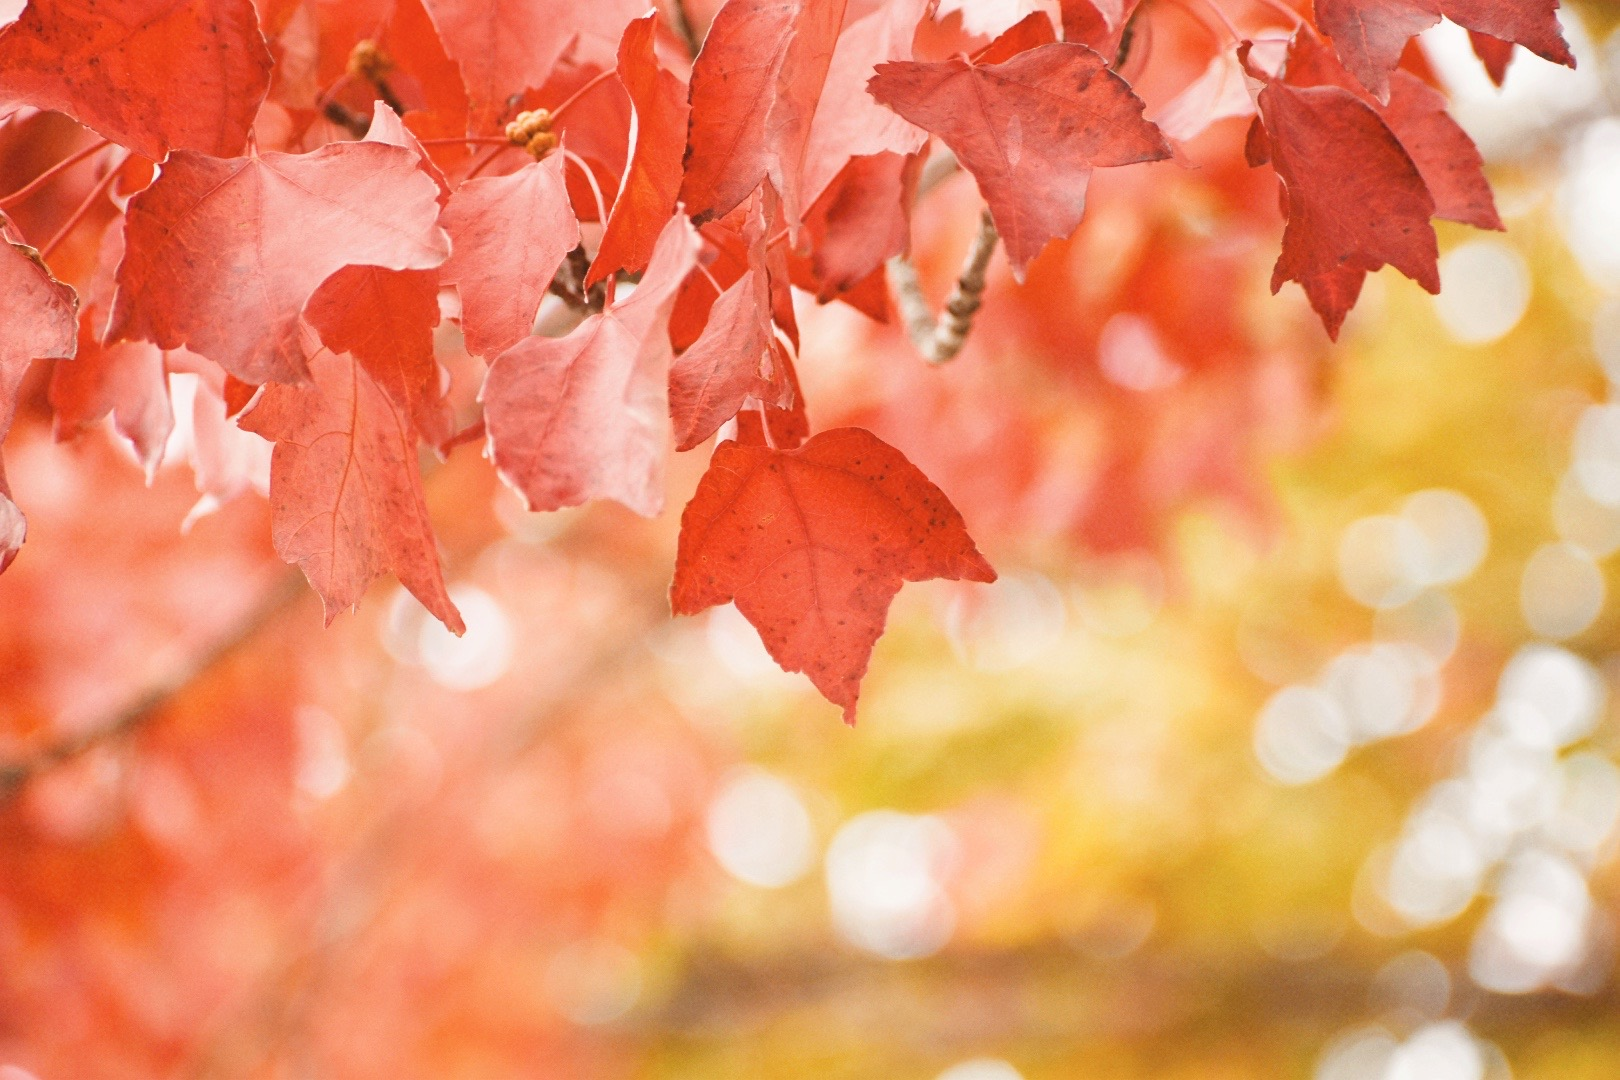 Some red fall leaves.